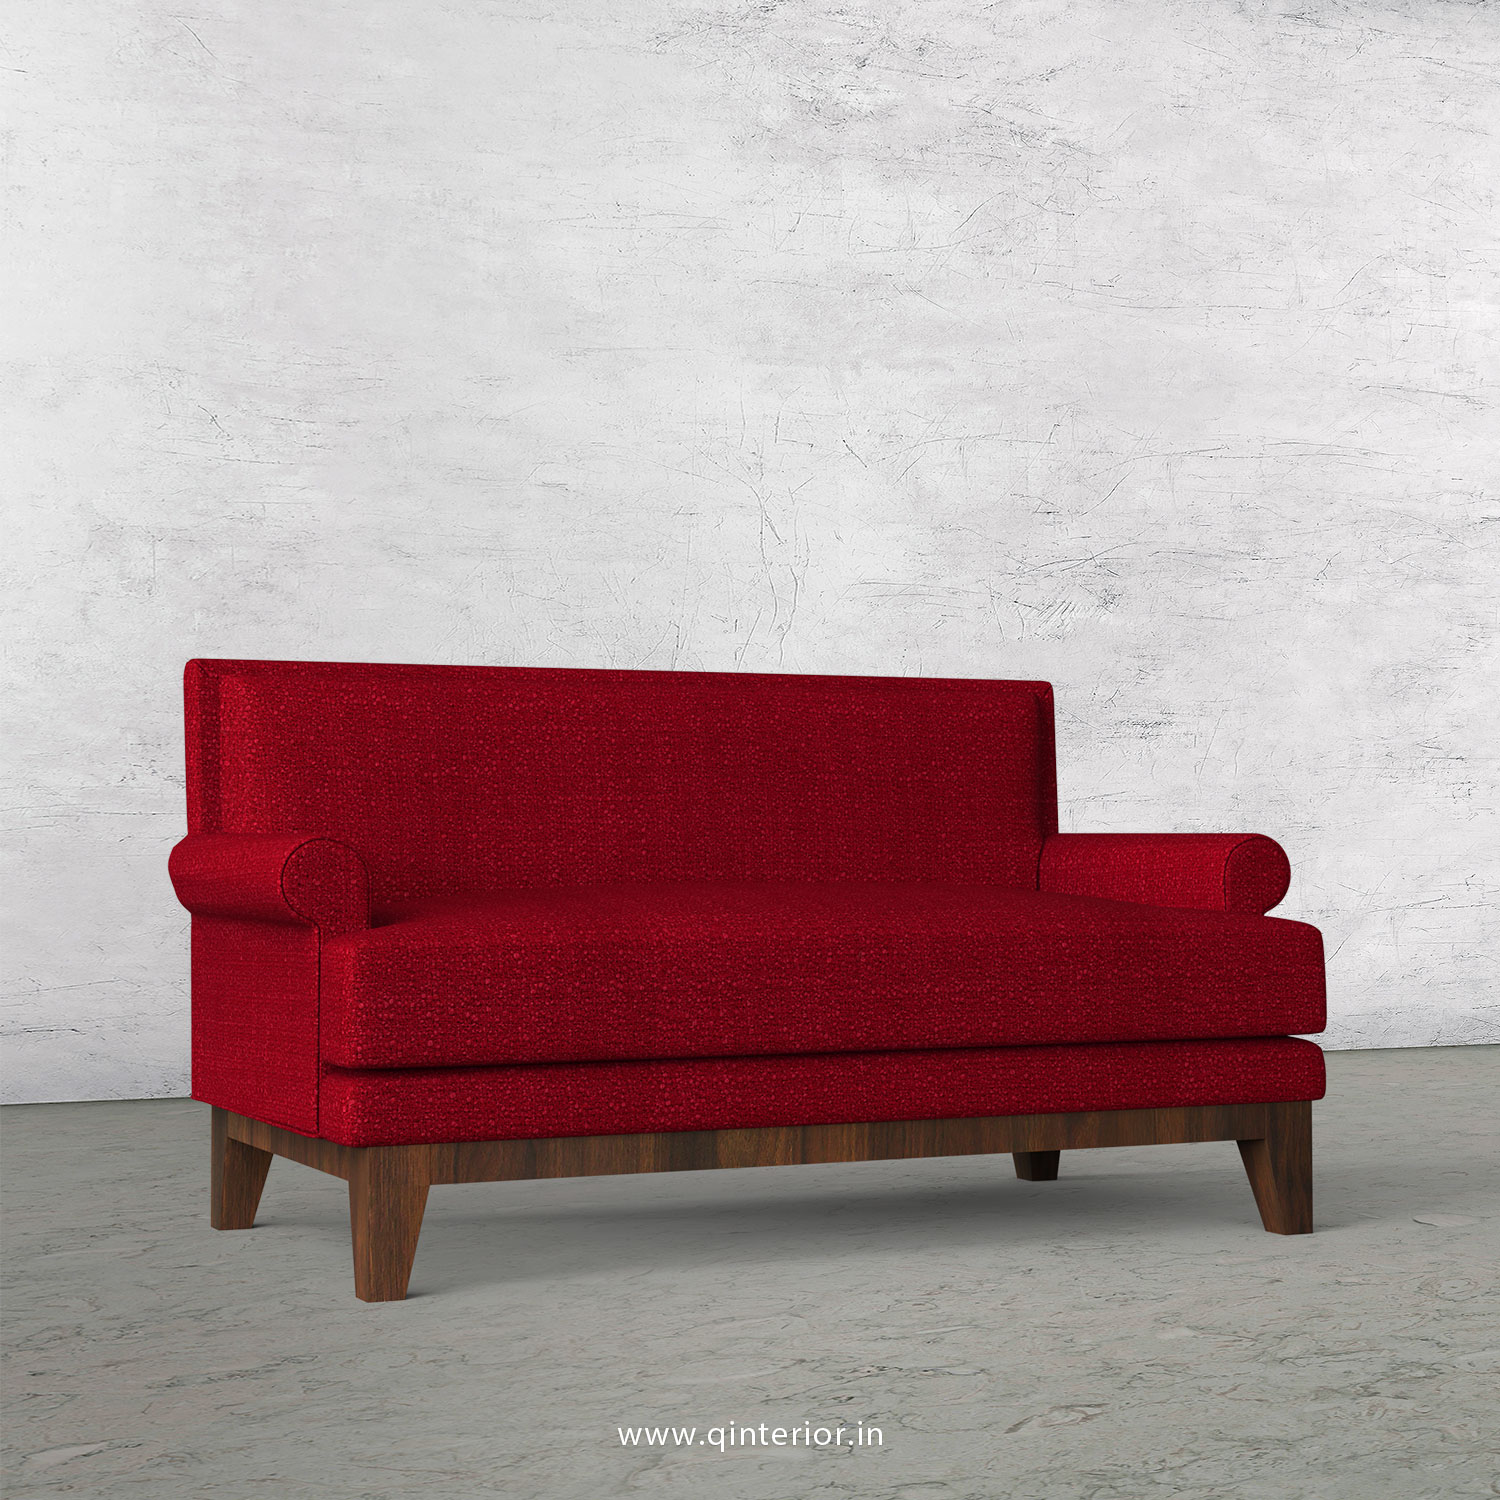 Aviana 2 Seater Sofa in Bargello Fabric - SFA001 BG08